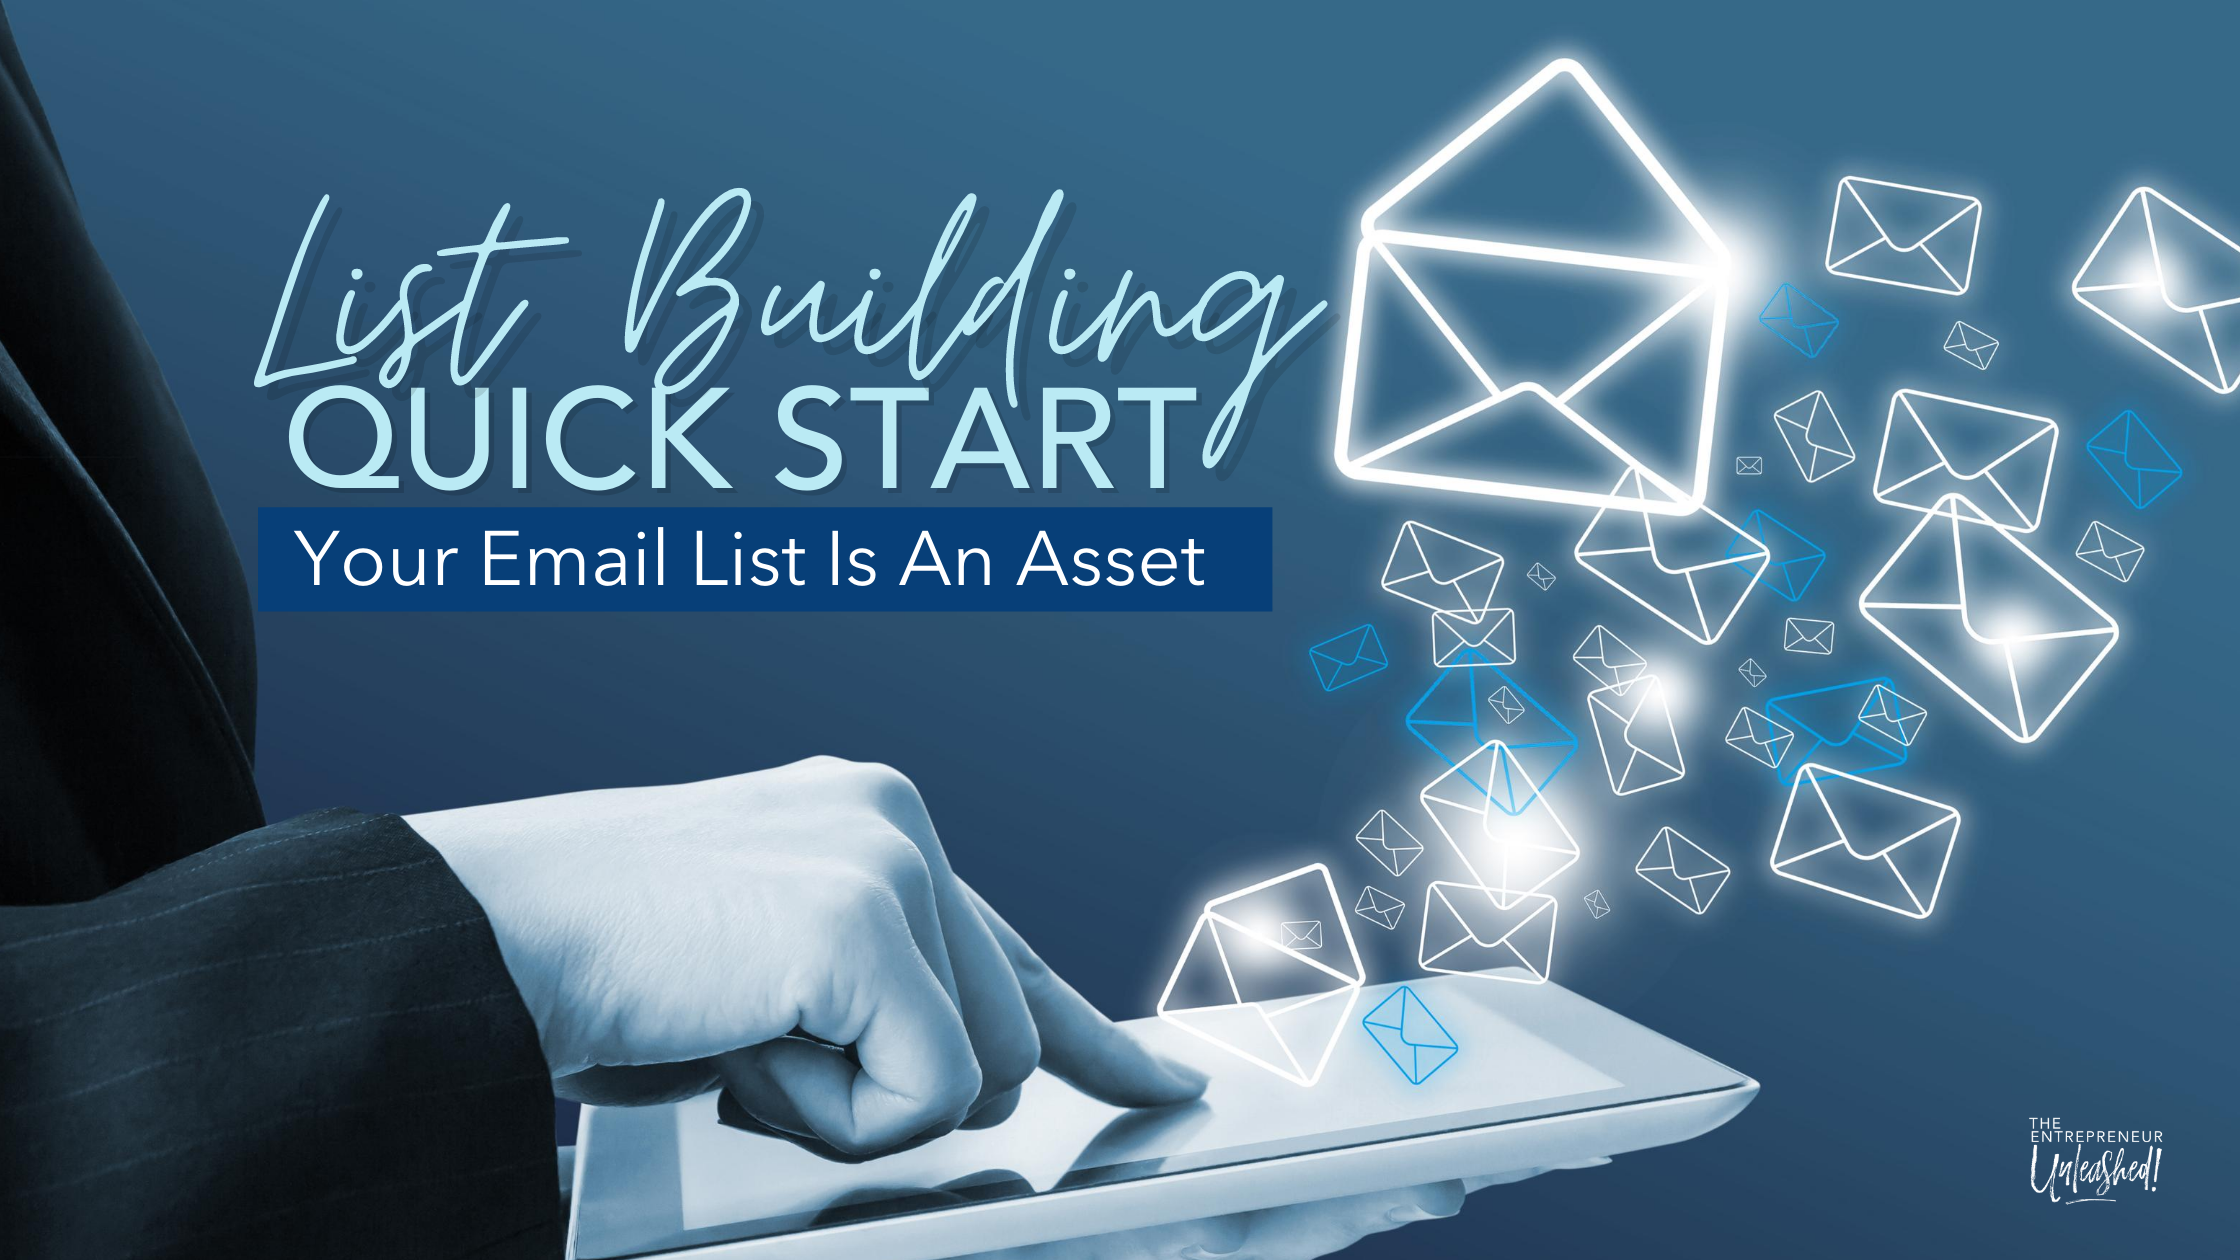 List Building Quick Start - Your Email List is an Asset